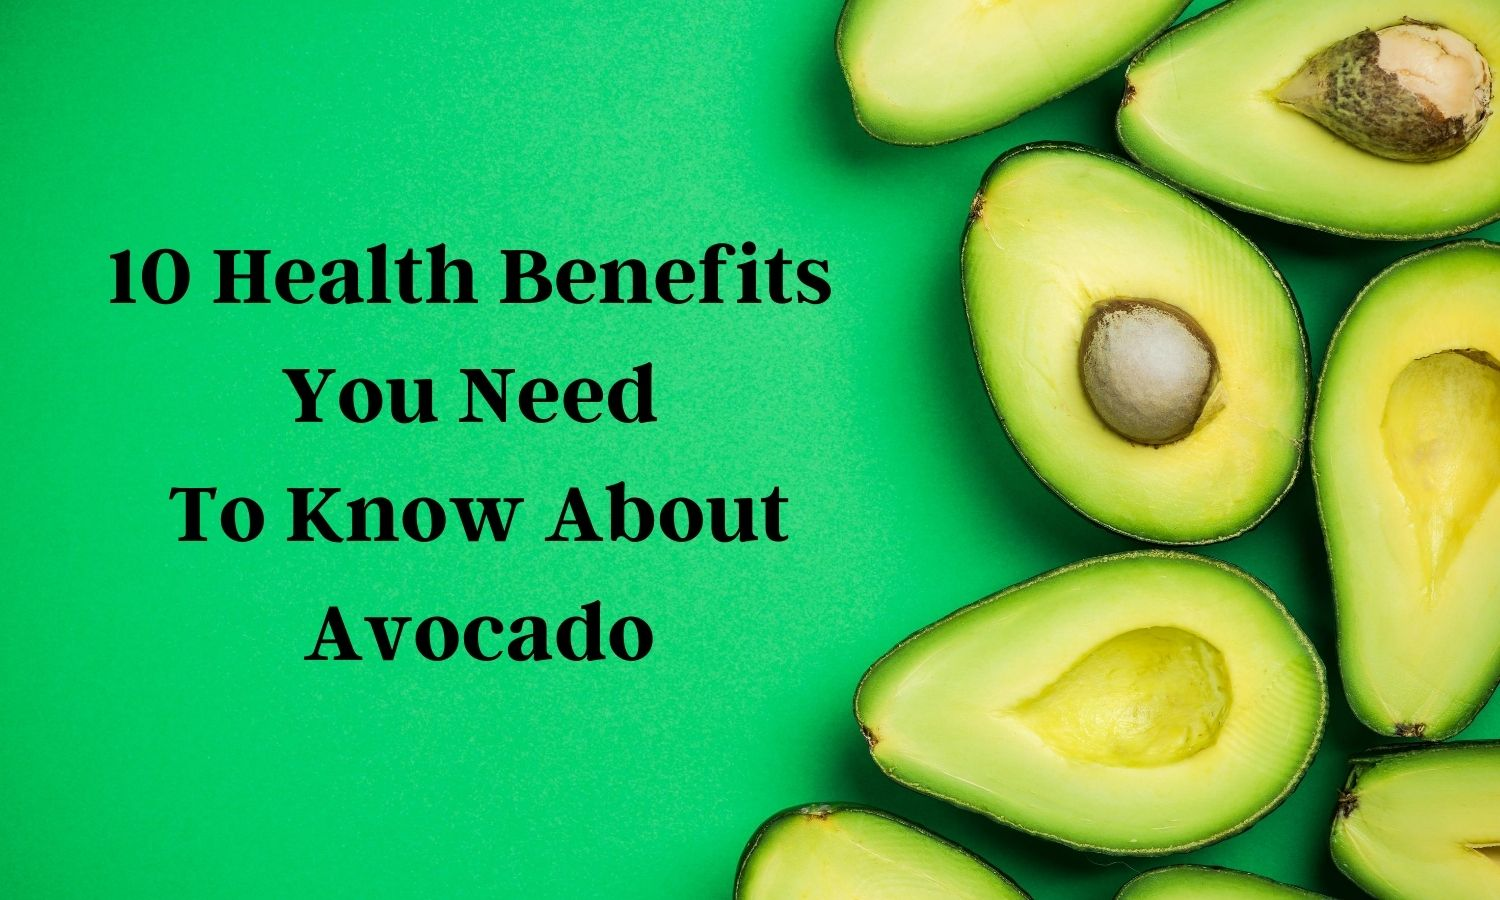 10 Health Benefits You Need To Know About Avocado